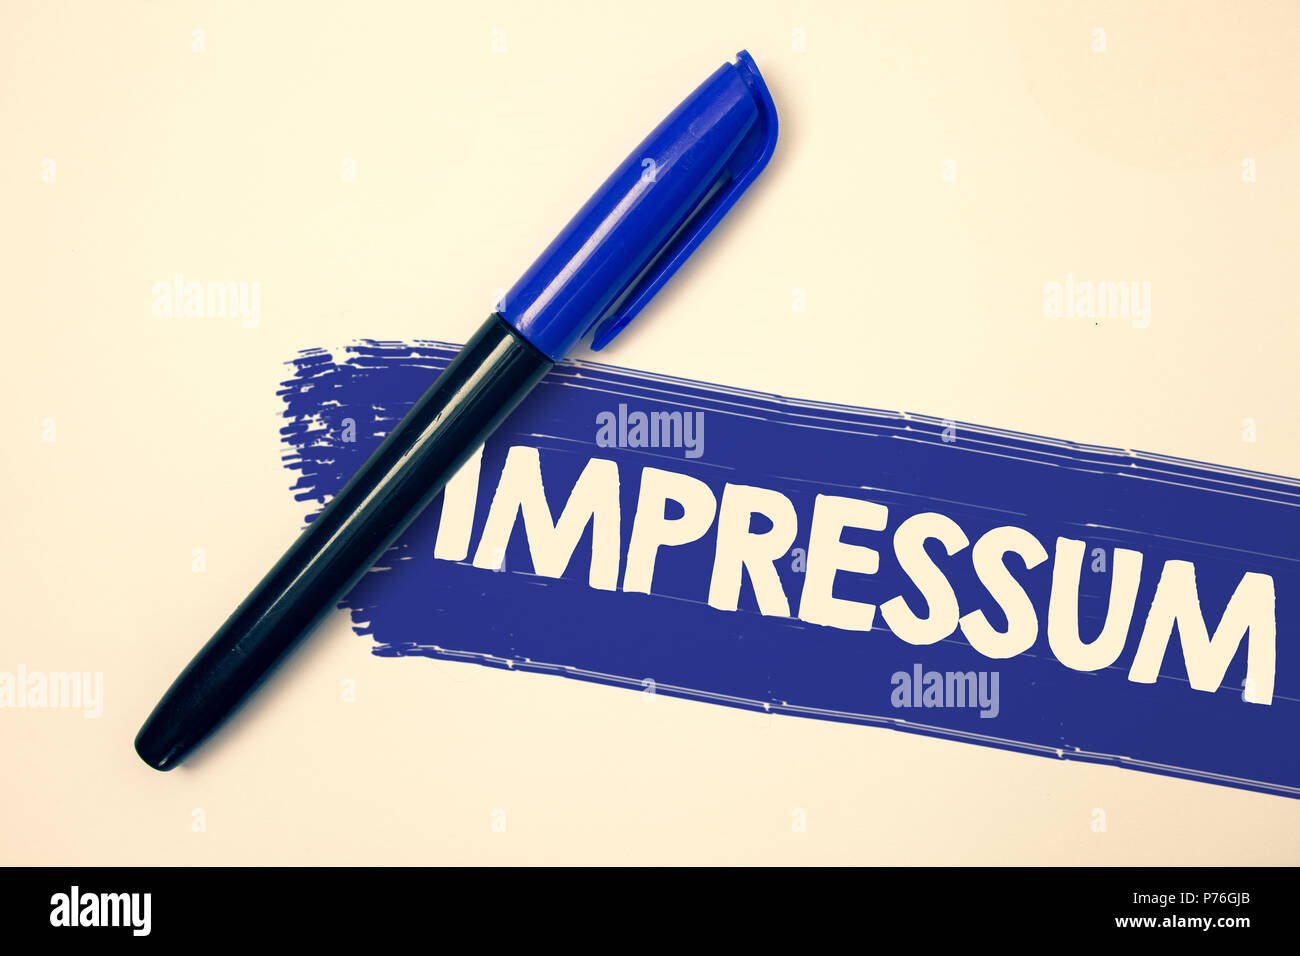 Word writing text Impressum. Business concept for Impressed Engraved Imprint German statement ownership authorship Ideas messages faded painting blue  - Stock Image